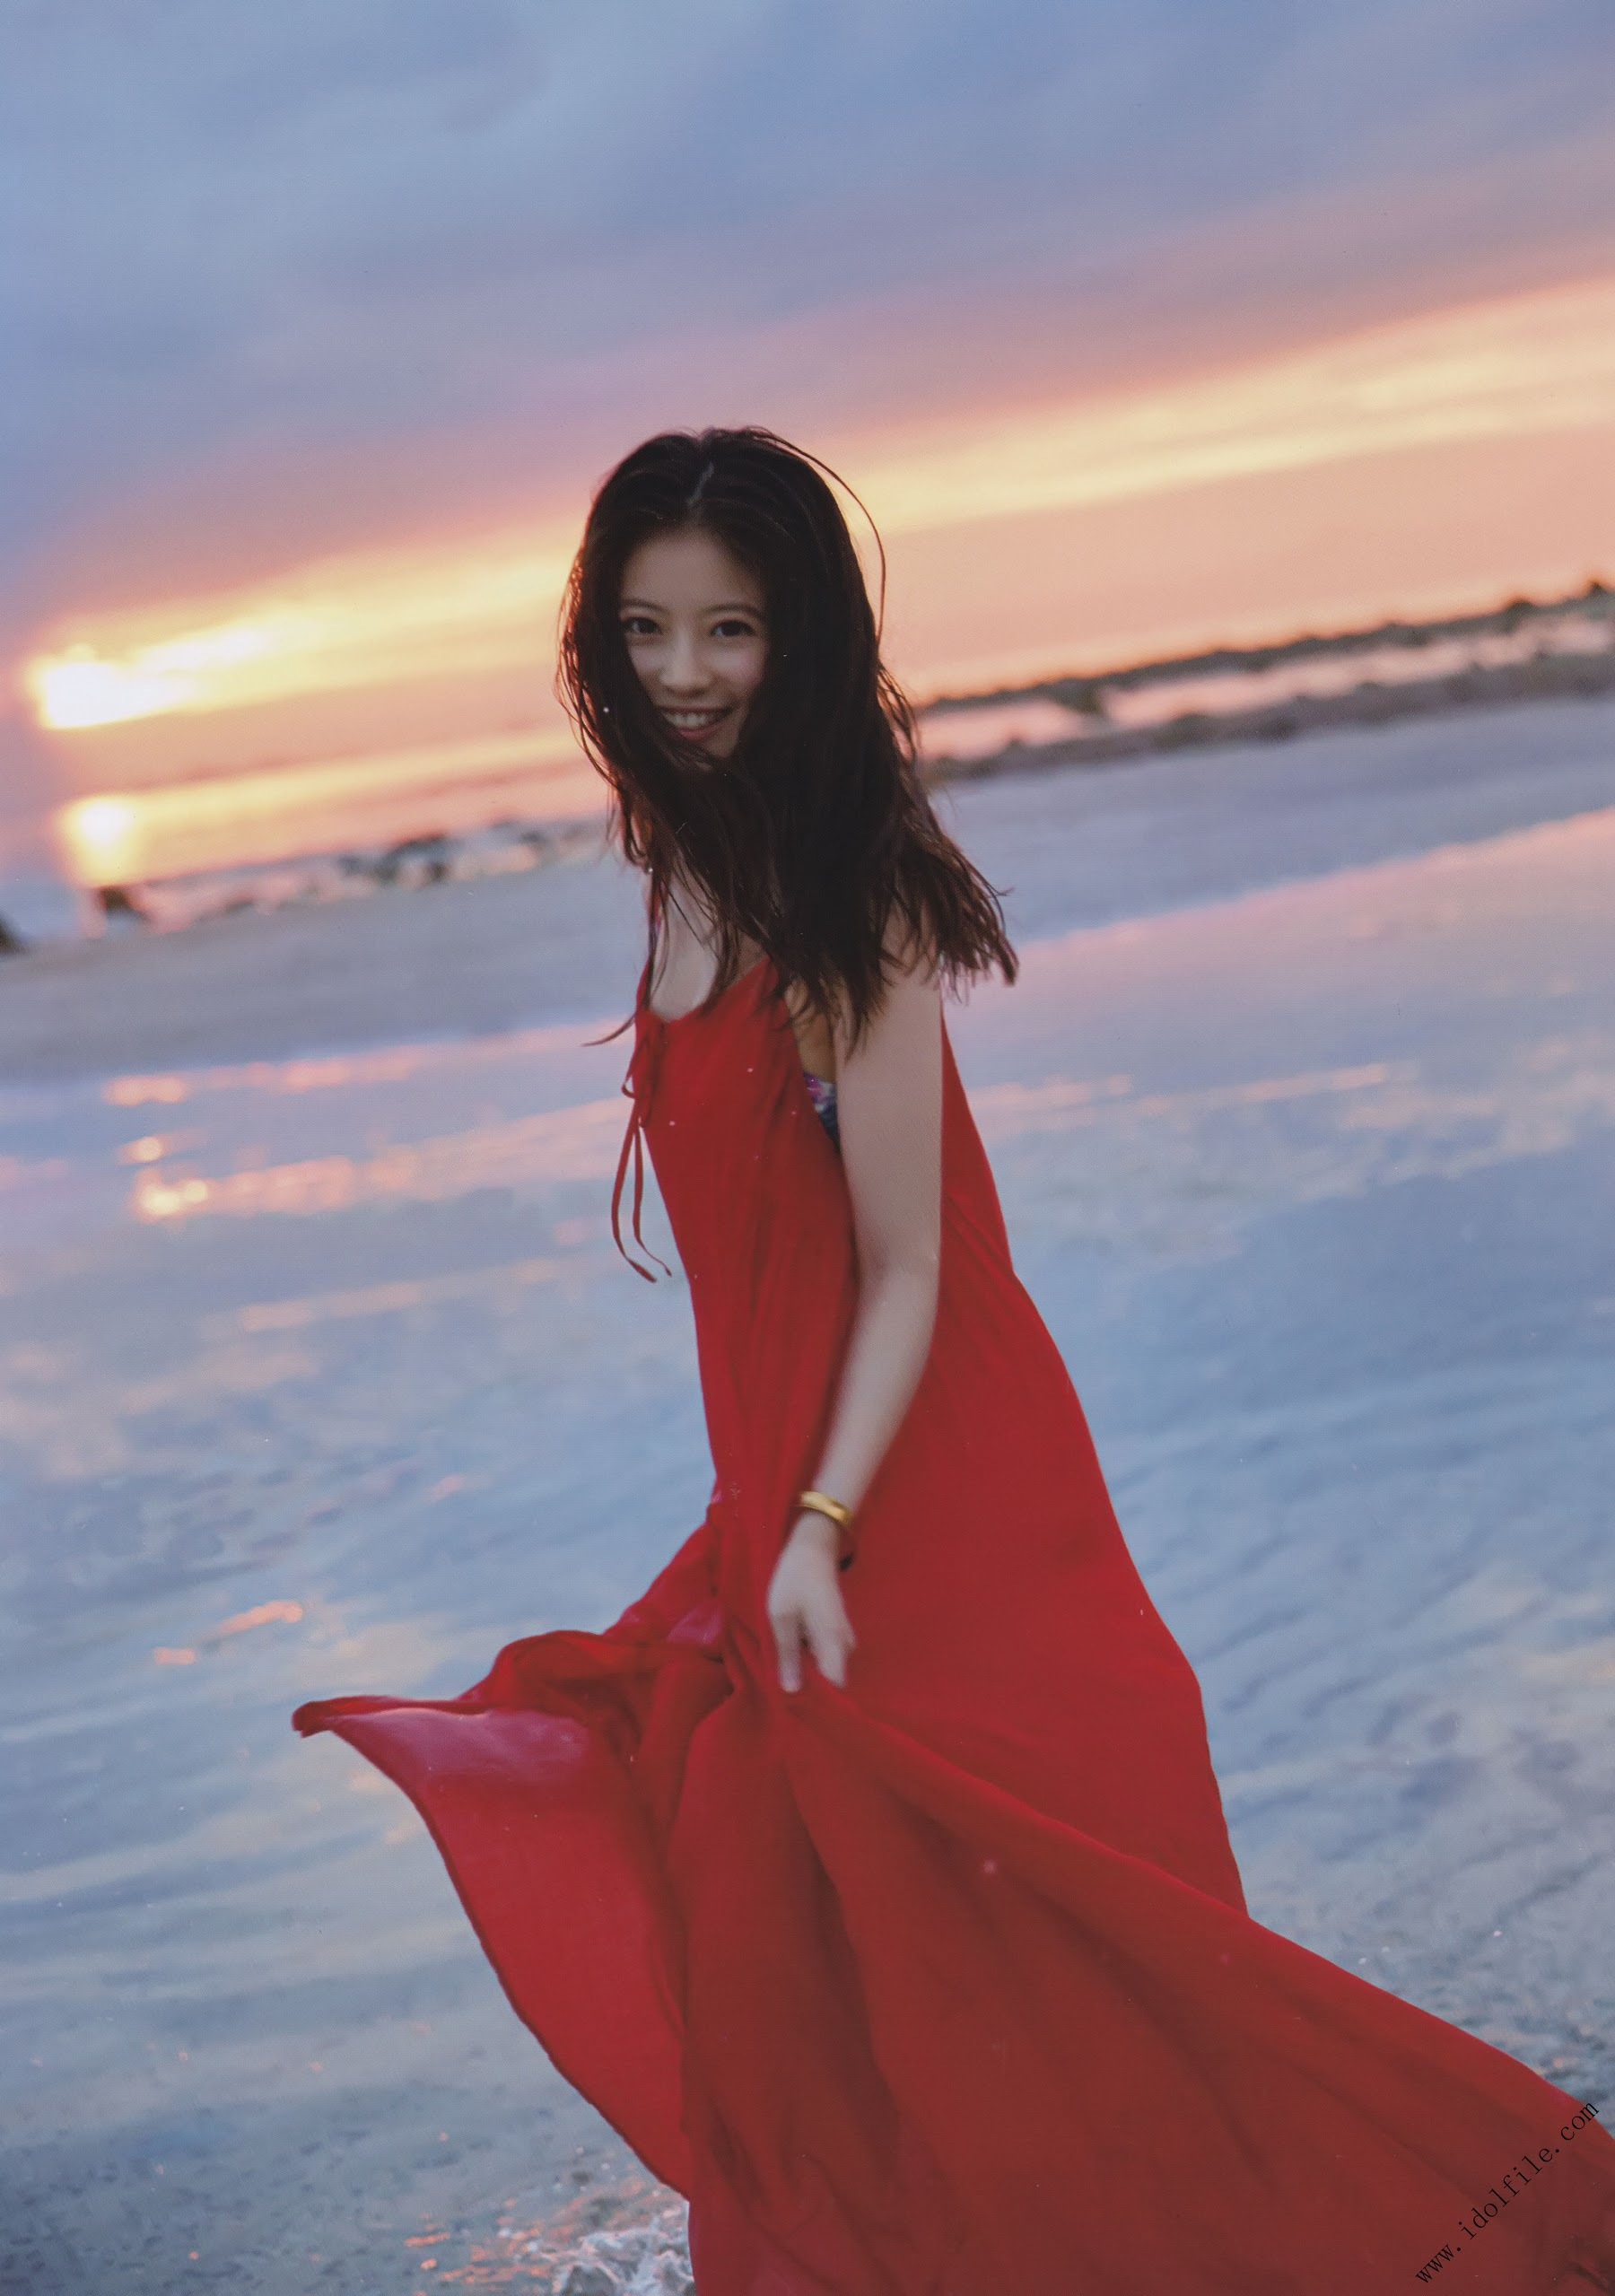 Pretty and beautiful, 22 years old and innocent Moving to the next stage as an actress Mio Imada147